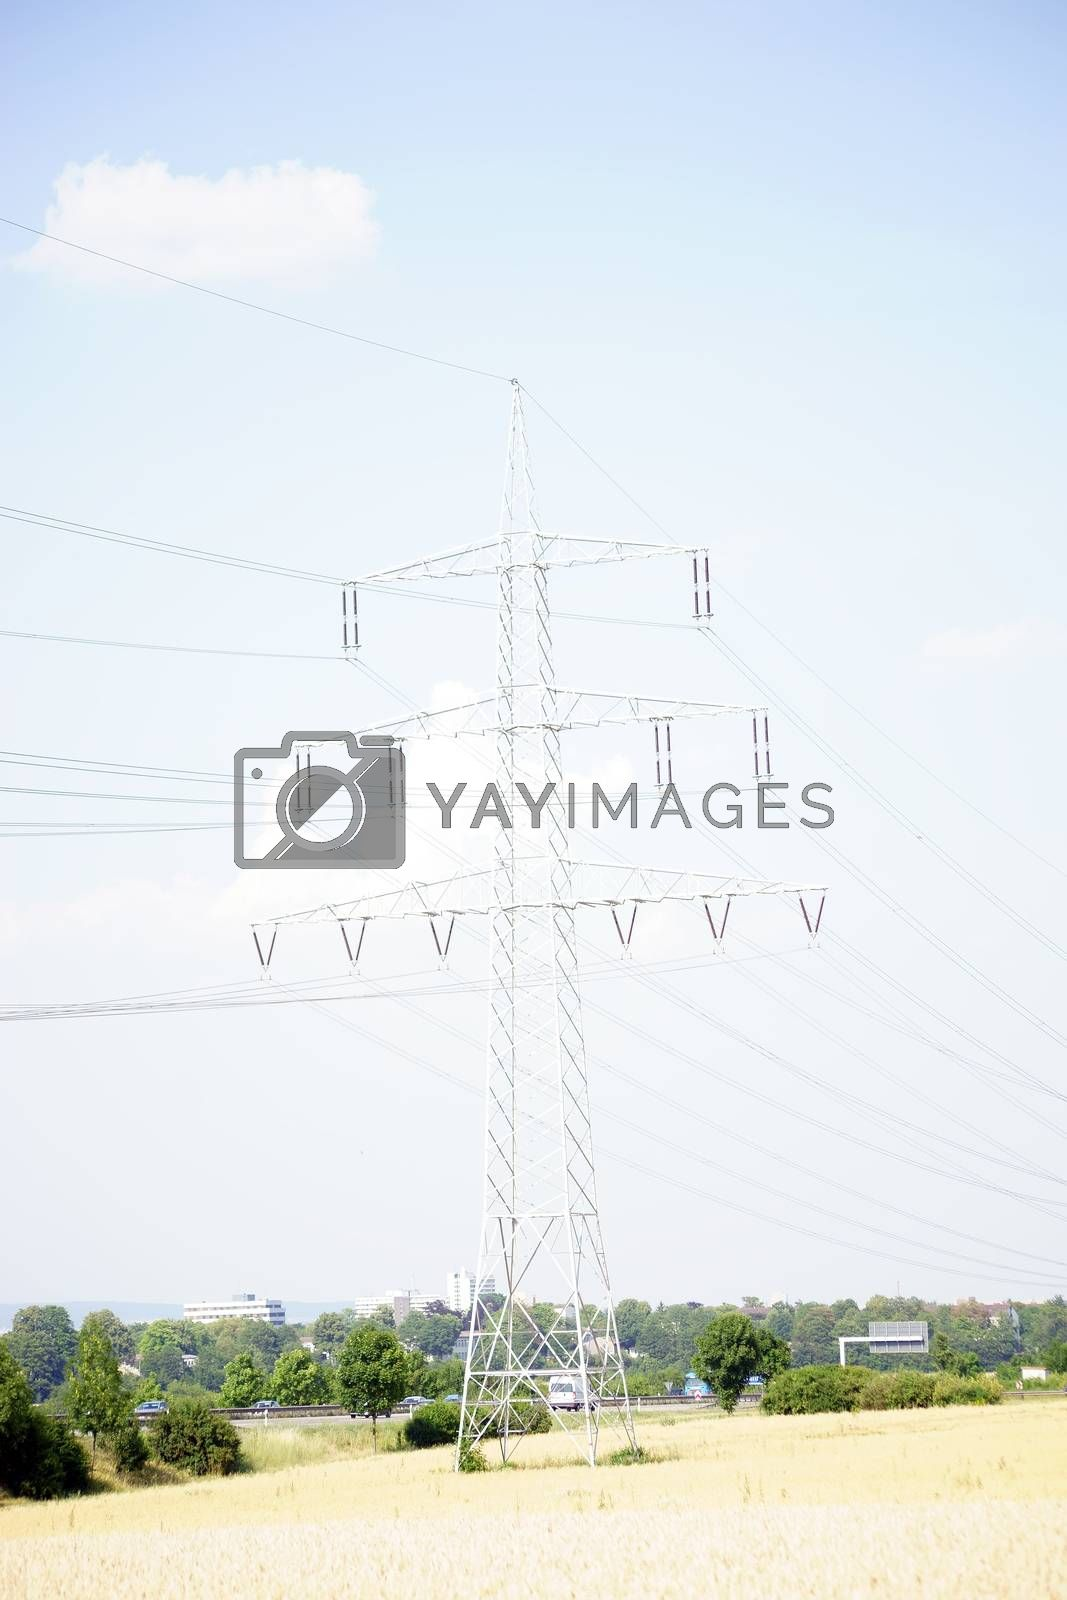 A pole with high-voltage lines on a field in the backlight.